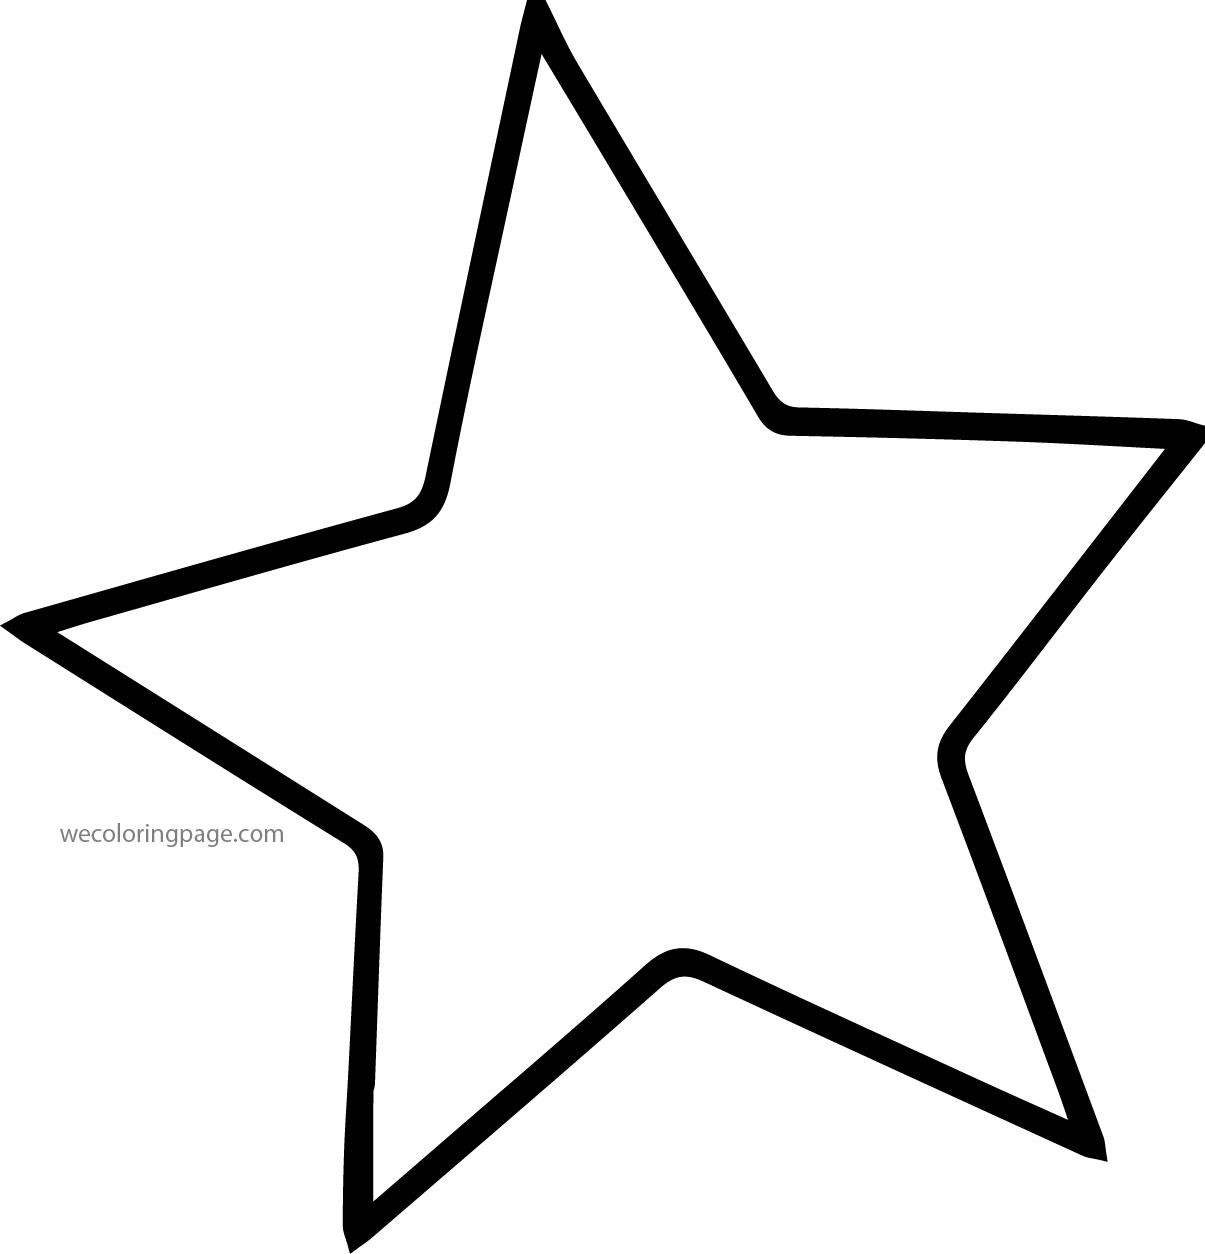 coloring picture of a star stars coloring pages best coloring pages for kids a star of picture coloring